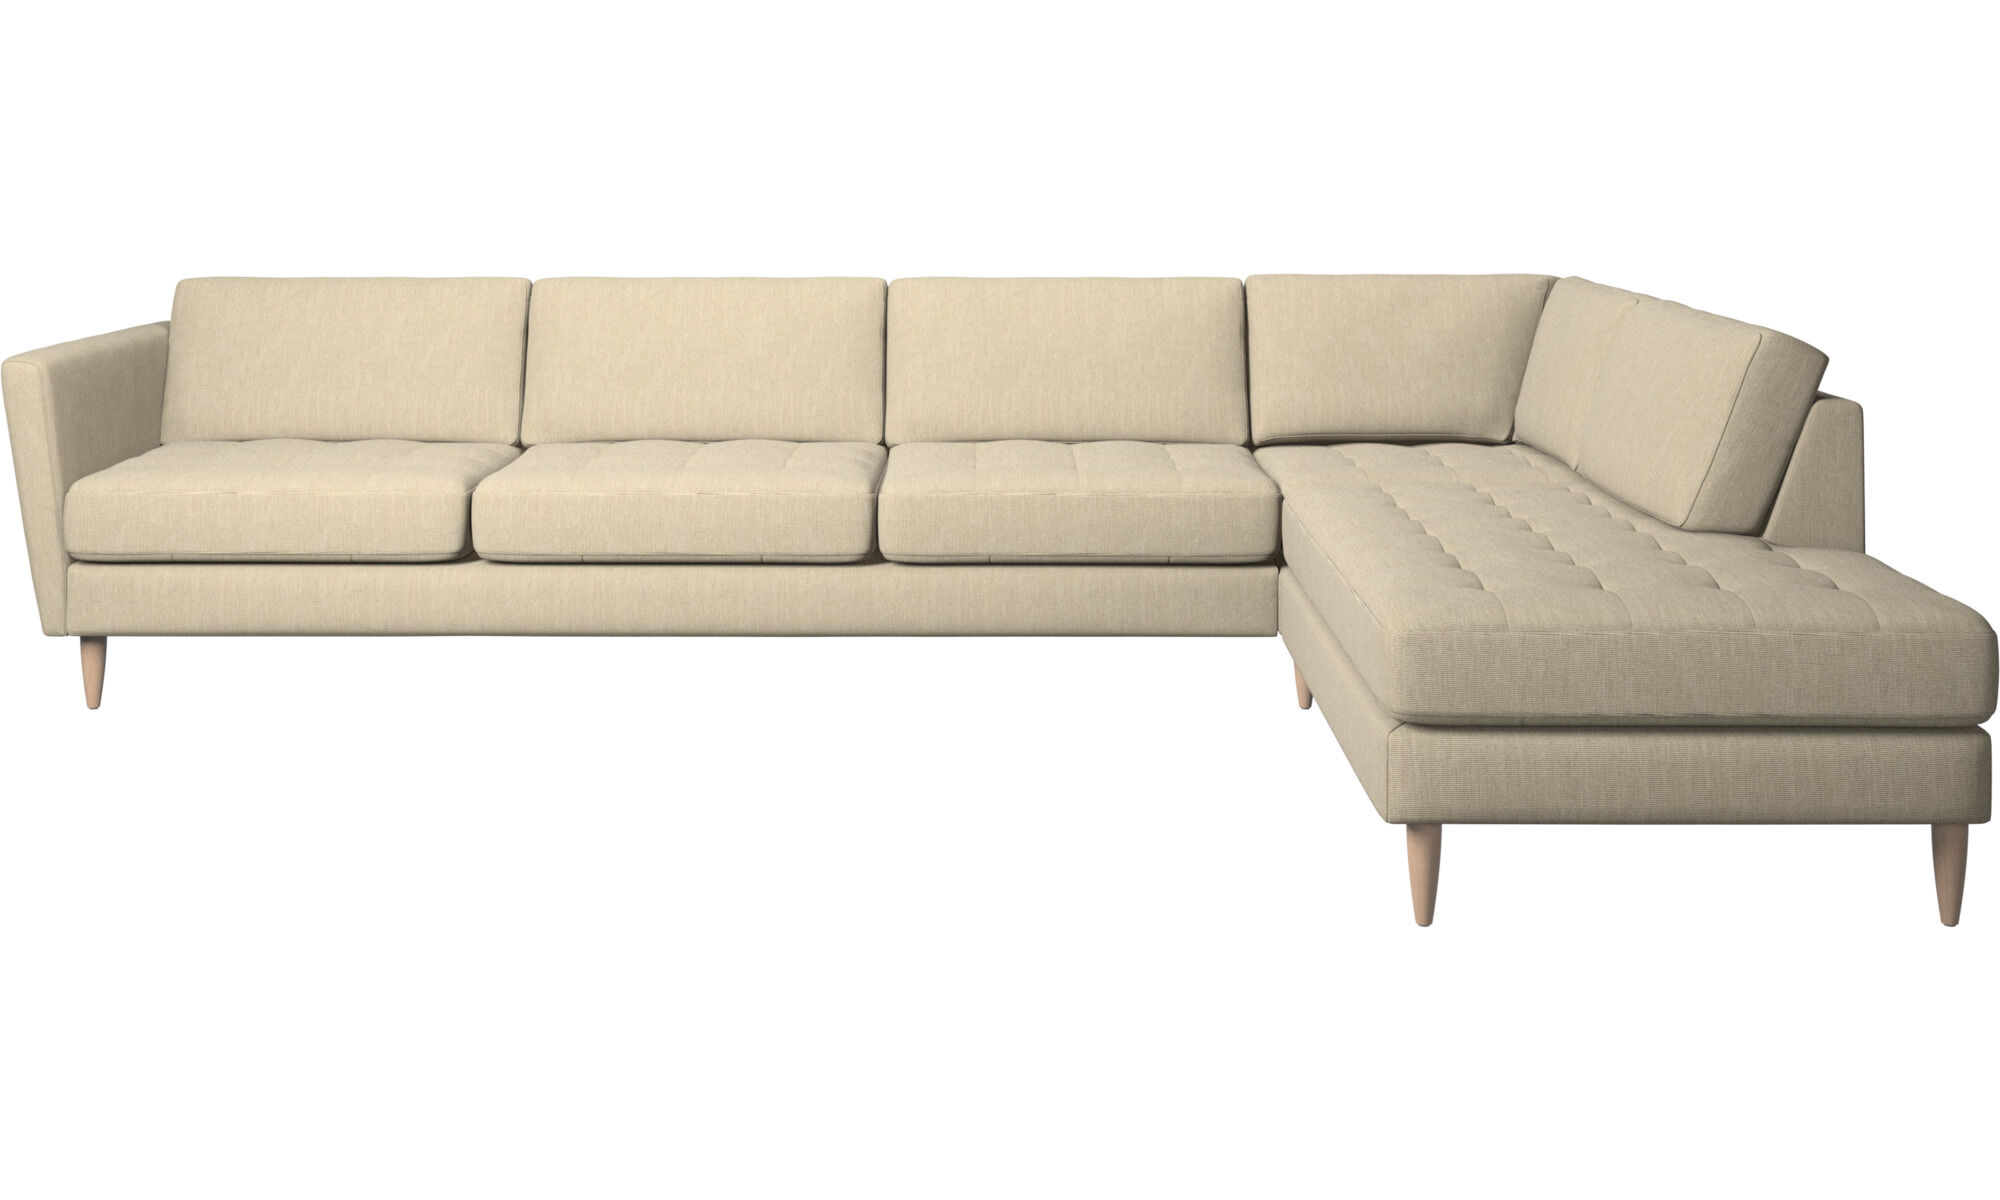 Sofas With Open End   Osaka Corner Sofa With Lounging Unit, Tufted Seat    Brown